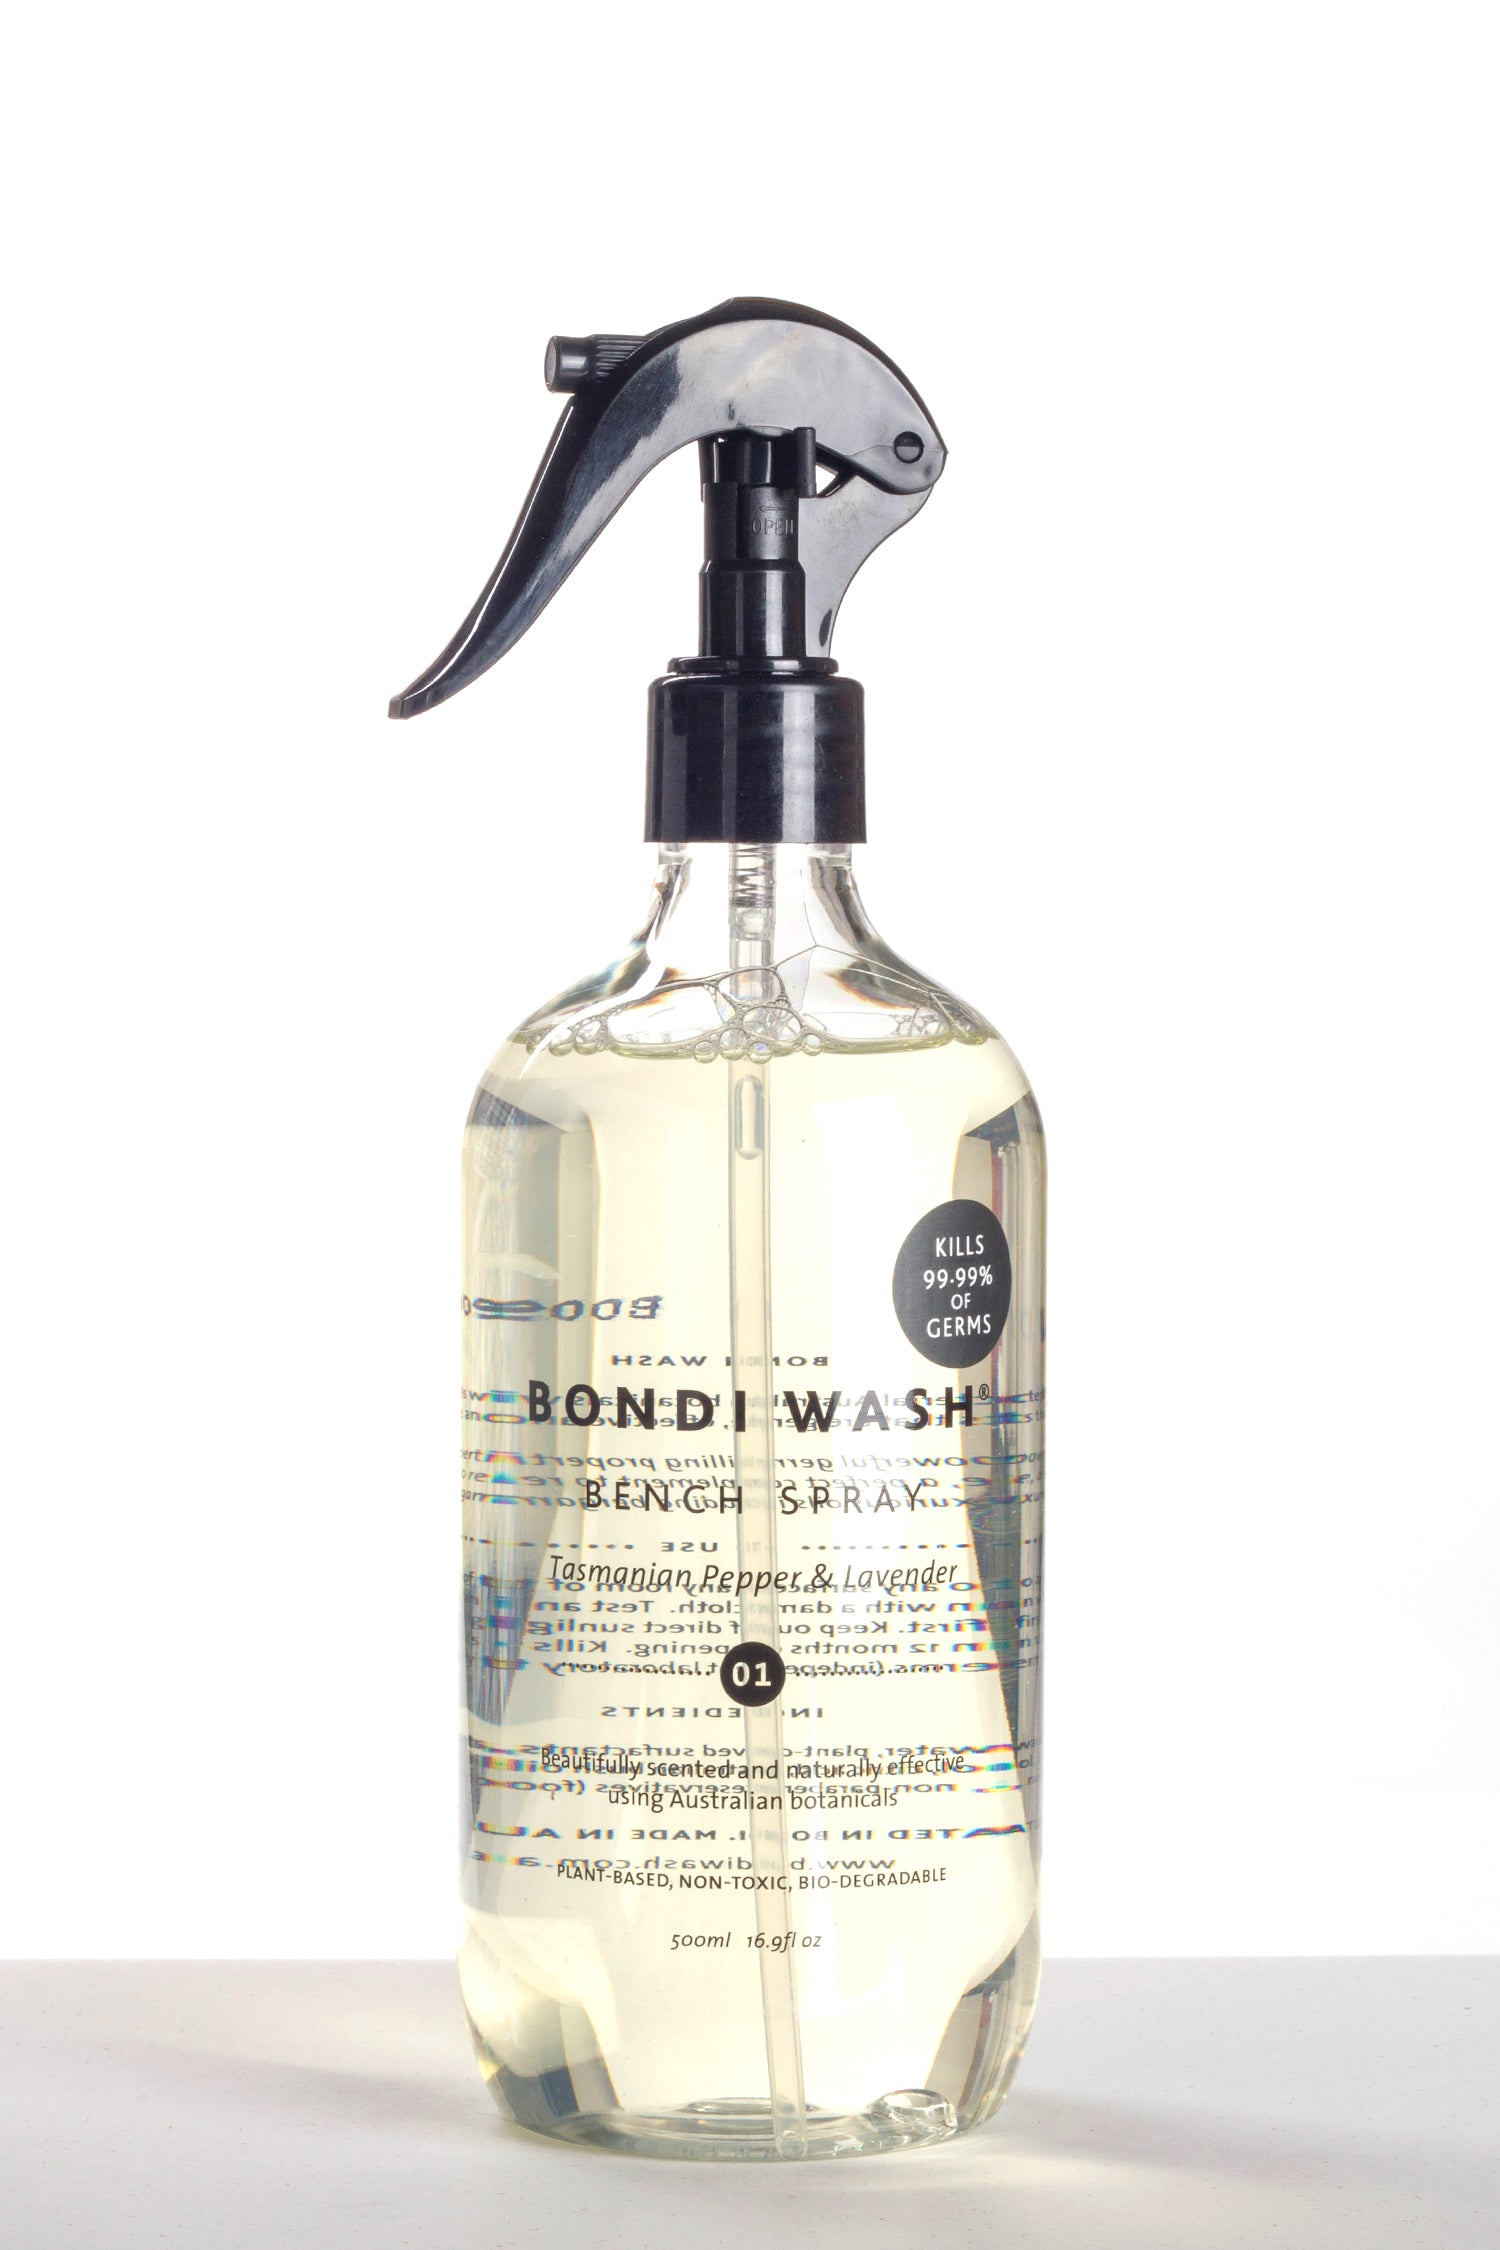 BENCH SPRAY SYDNEY TASMANIAN PEPPER & LAVENDER 500ml